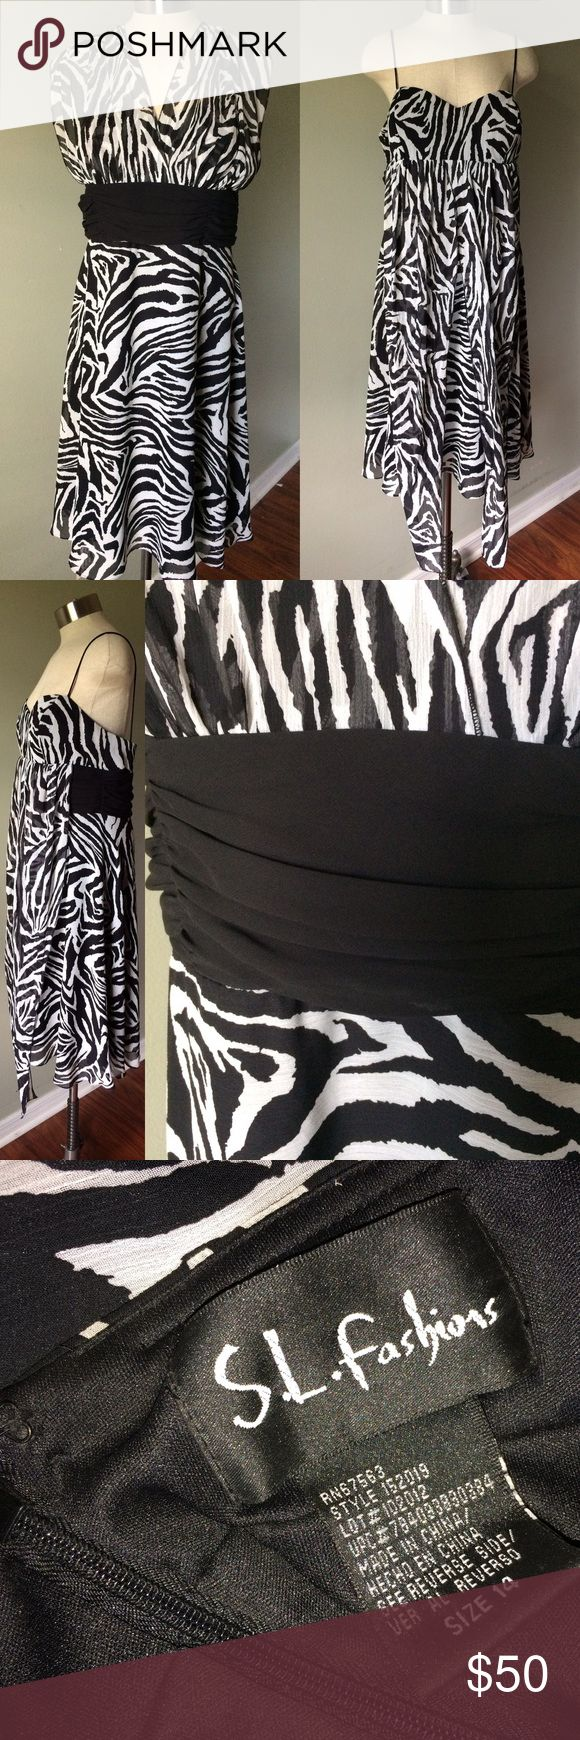 """▪️◽️Zebra Print Dress◽️▪️ Worn only once. Has been stored with care and is in excellent condition. Purchased from Group USA.  Zipper is functional. Dress can be tied multiple ways. Measurements: 32"""" Long, 17"""" Bust, 17.5/18"""" Waist, Straps 16.5"""" and Two Ties 37"""". If you have any questions feel free to ask! Happy Poshing 😊💕💕 S.L. Fashions Dresses"""